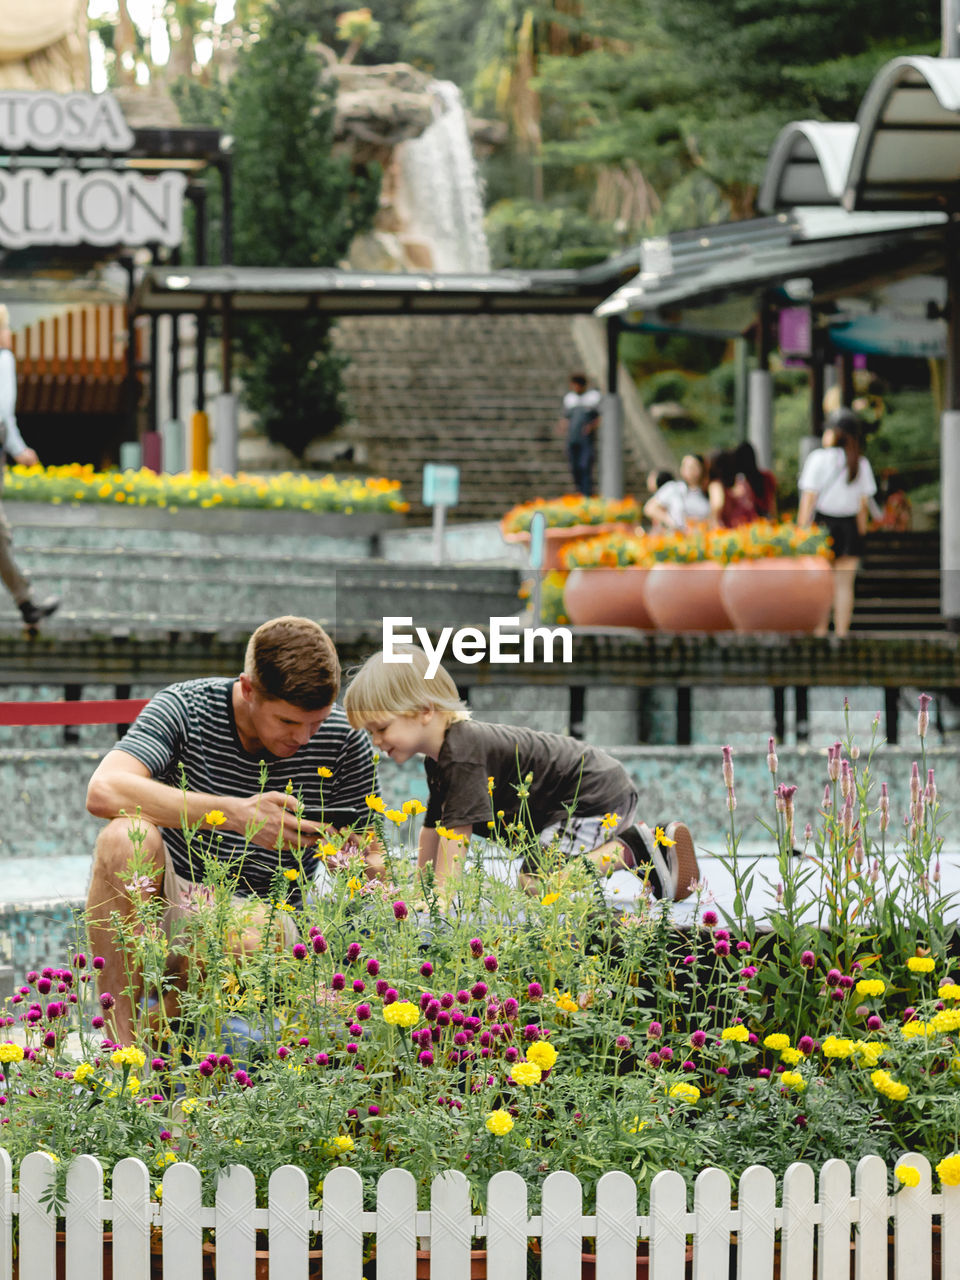 VIEW OF FLOWERING PLANTS AT WATER